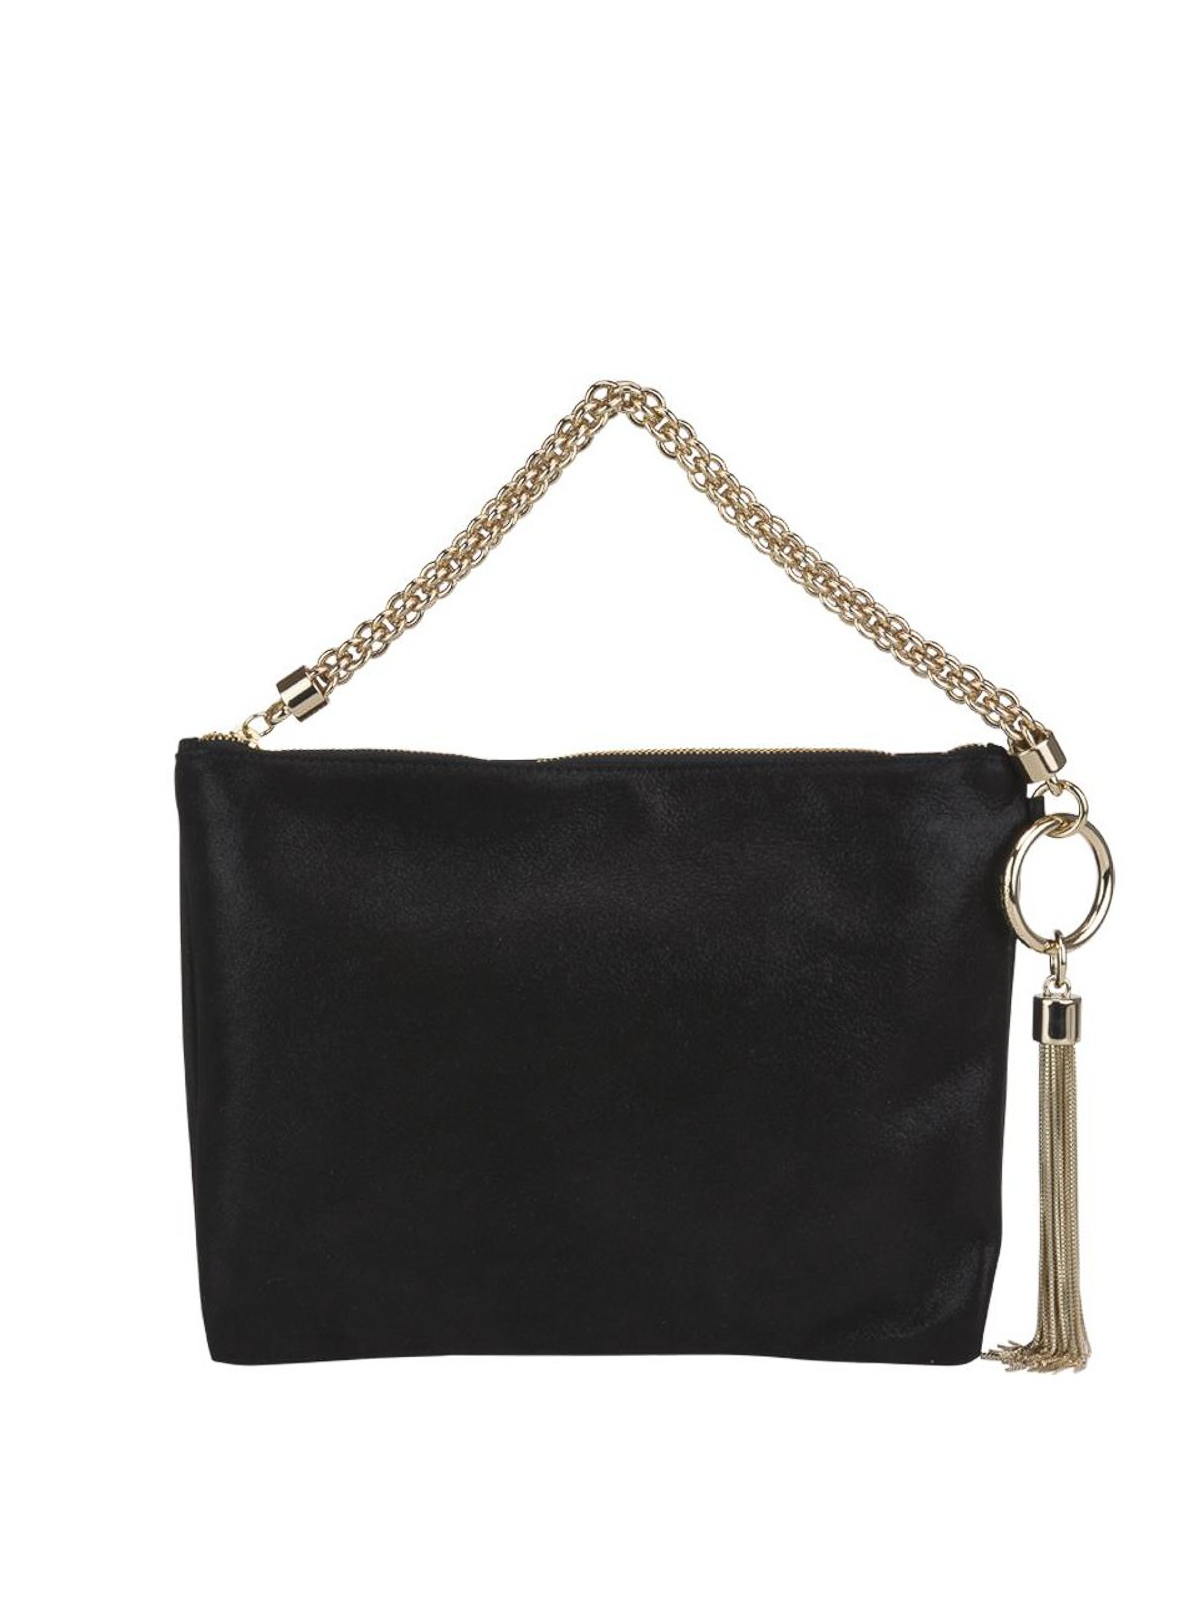 dee86e6fb9c Jimmy Choo - Callie black shimmer suede clutch - clutches ...